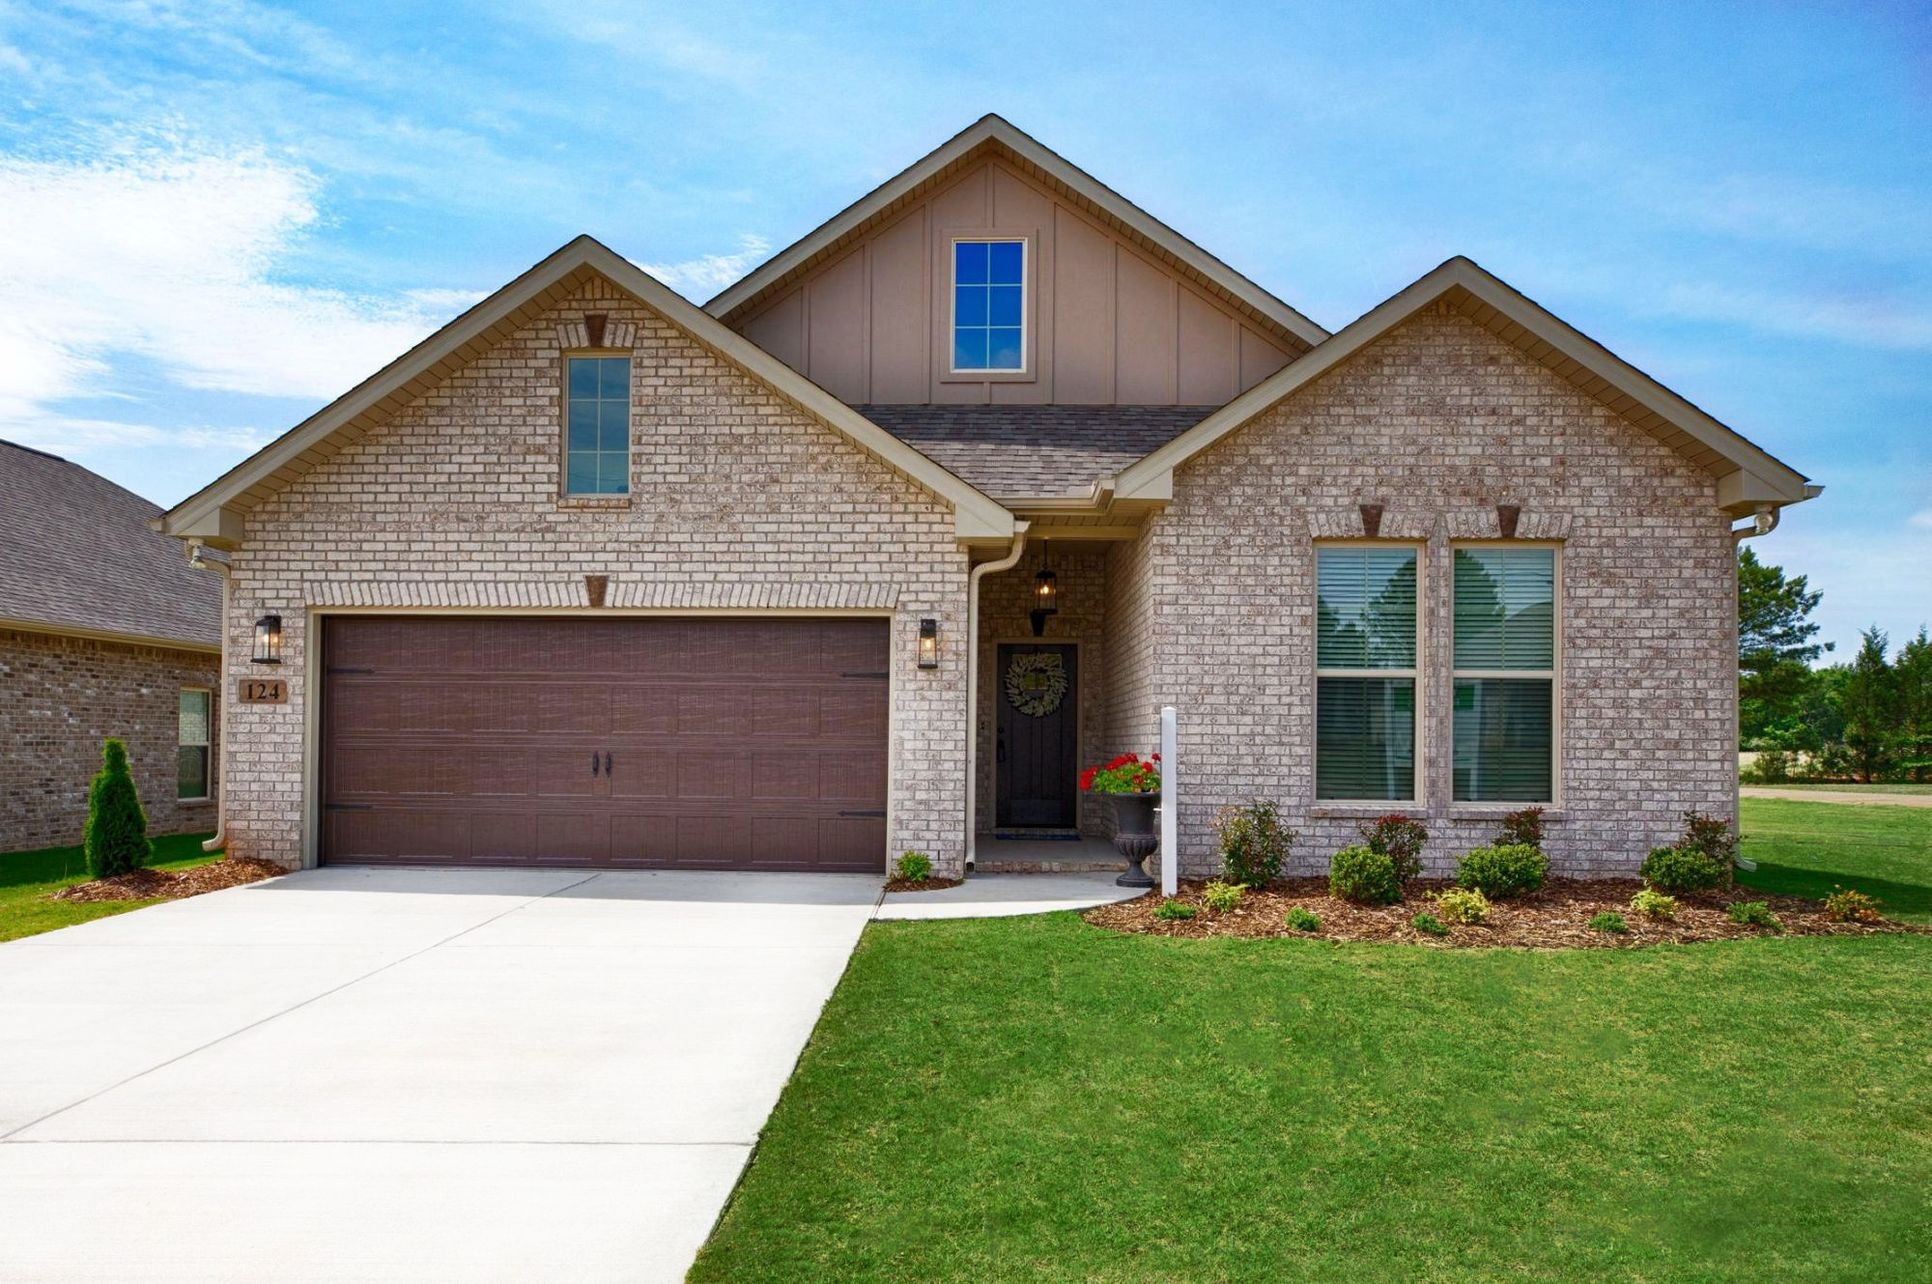 New Home Community in Athens, AL by DSLD Homes:Belrose Place Model Home images - Trenton III A - Floor Plan - DSLD Homes